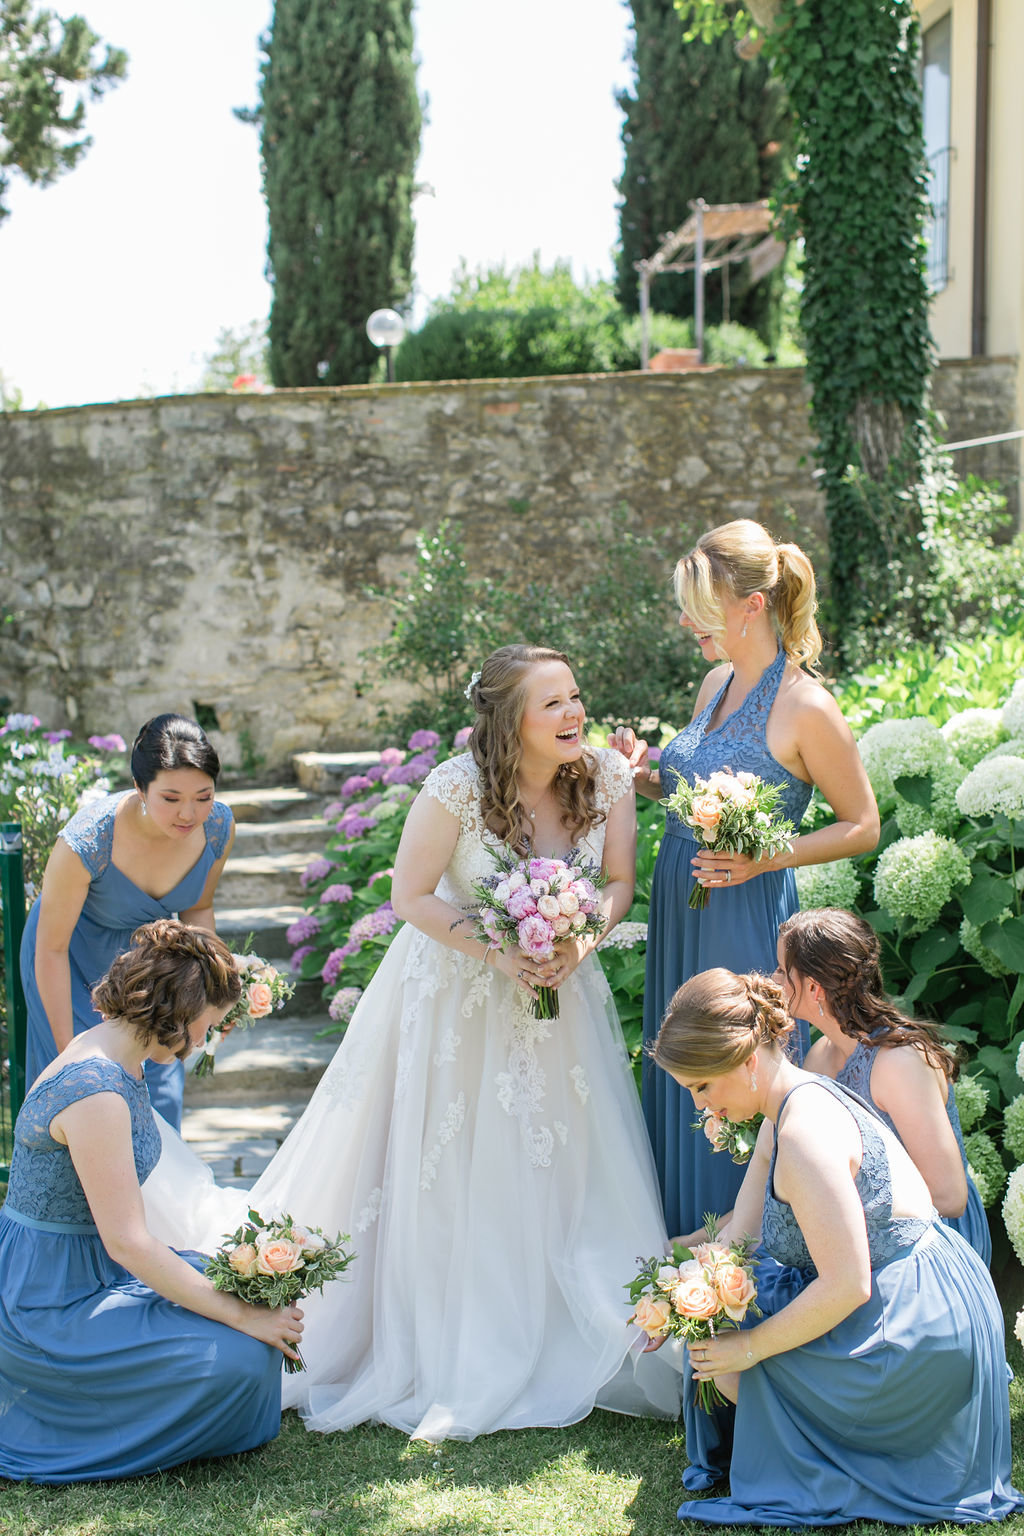 villa-medicea-lilliano-tuscany-wedding-photographer-roberta-facchini-photography-17